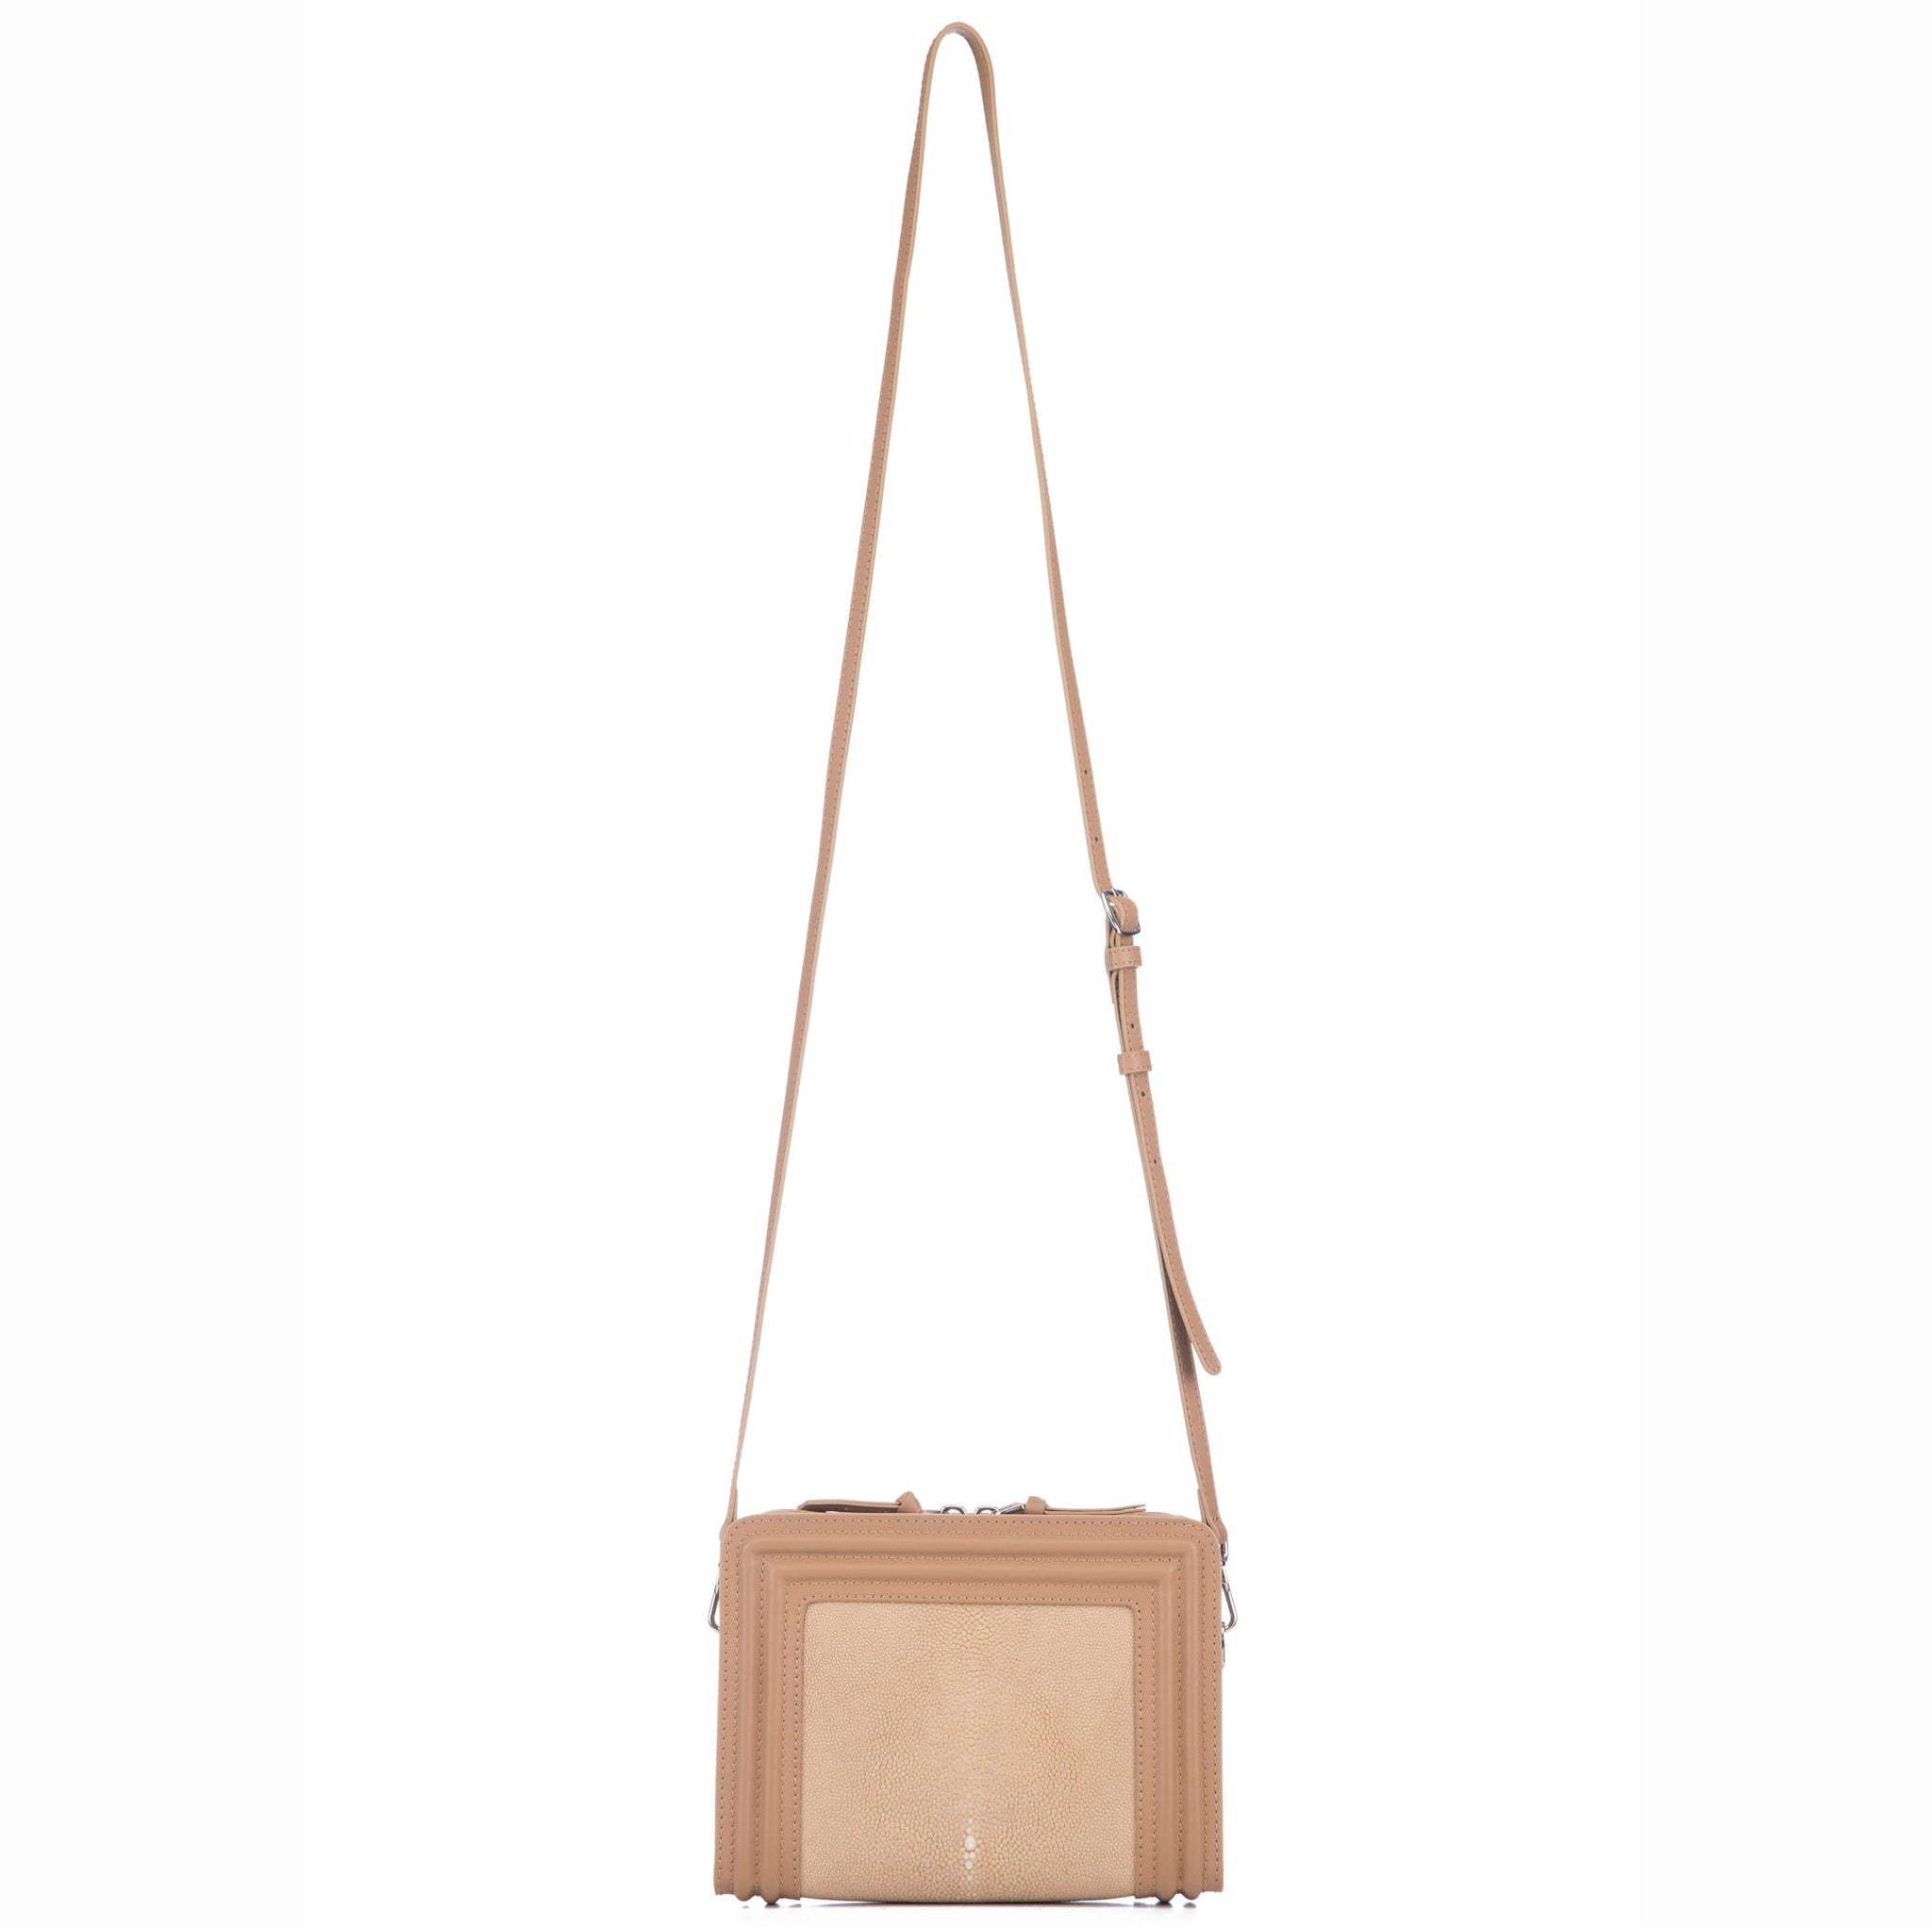 Tan Corded Leather Frames Putty Stingray Double Zipper Top Cross Body Bag Shoulder Strap View Nora - Vivo Direct